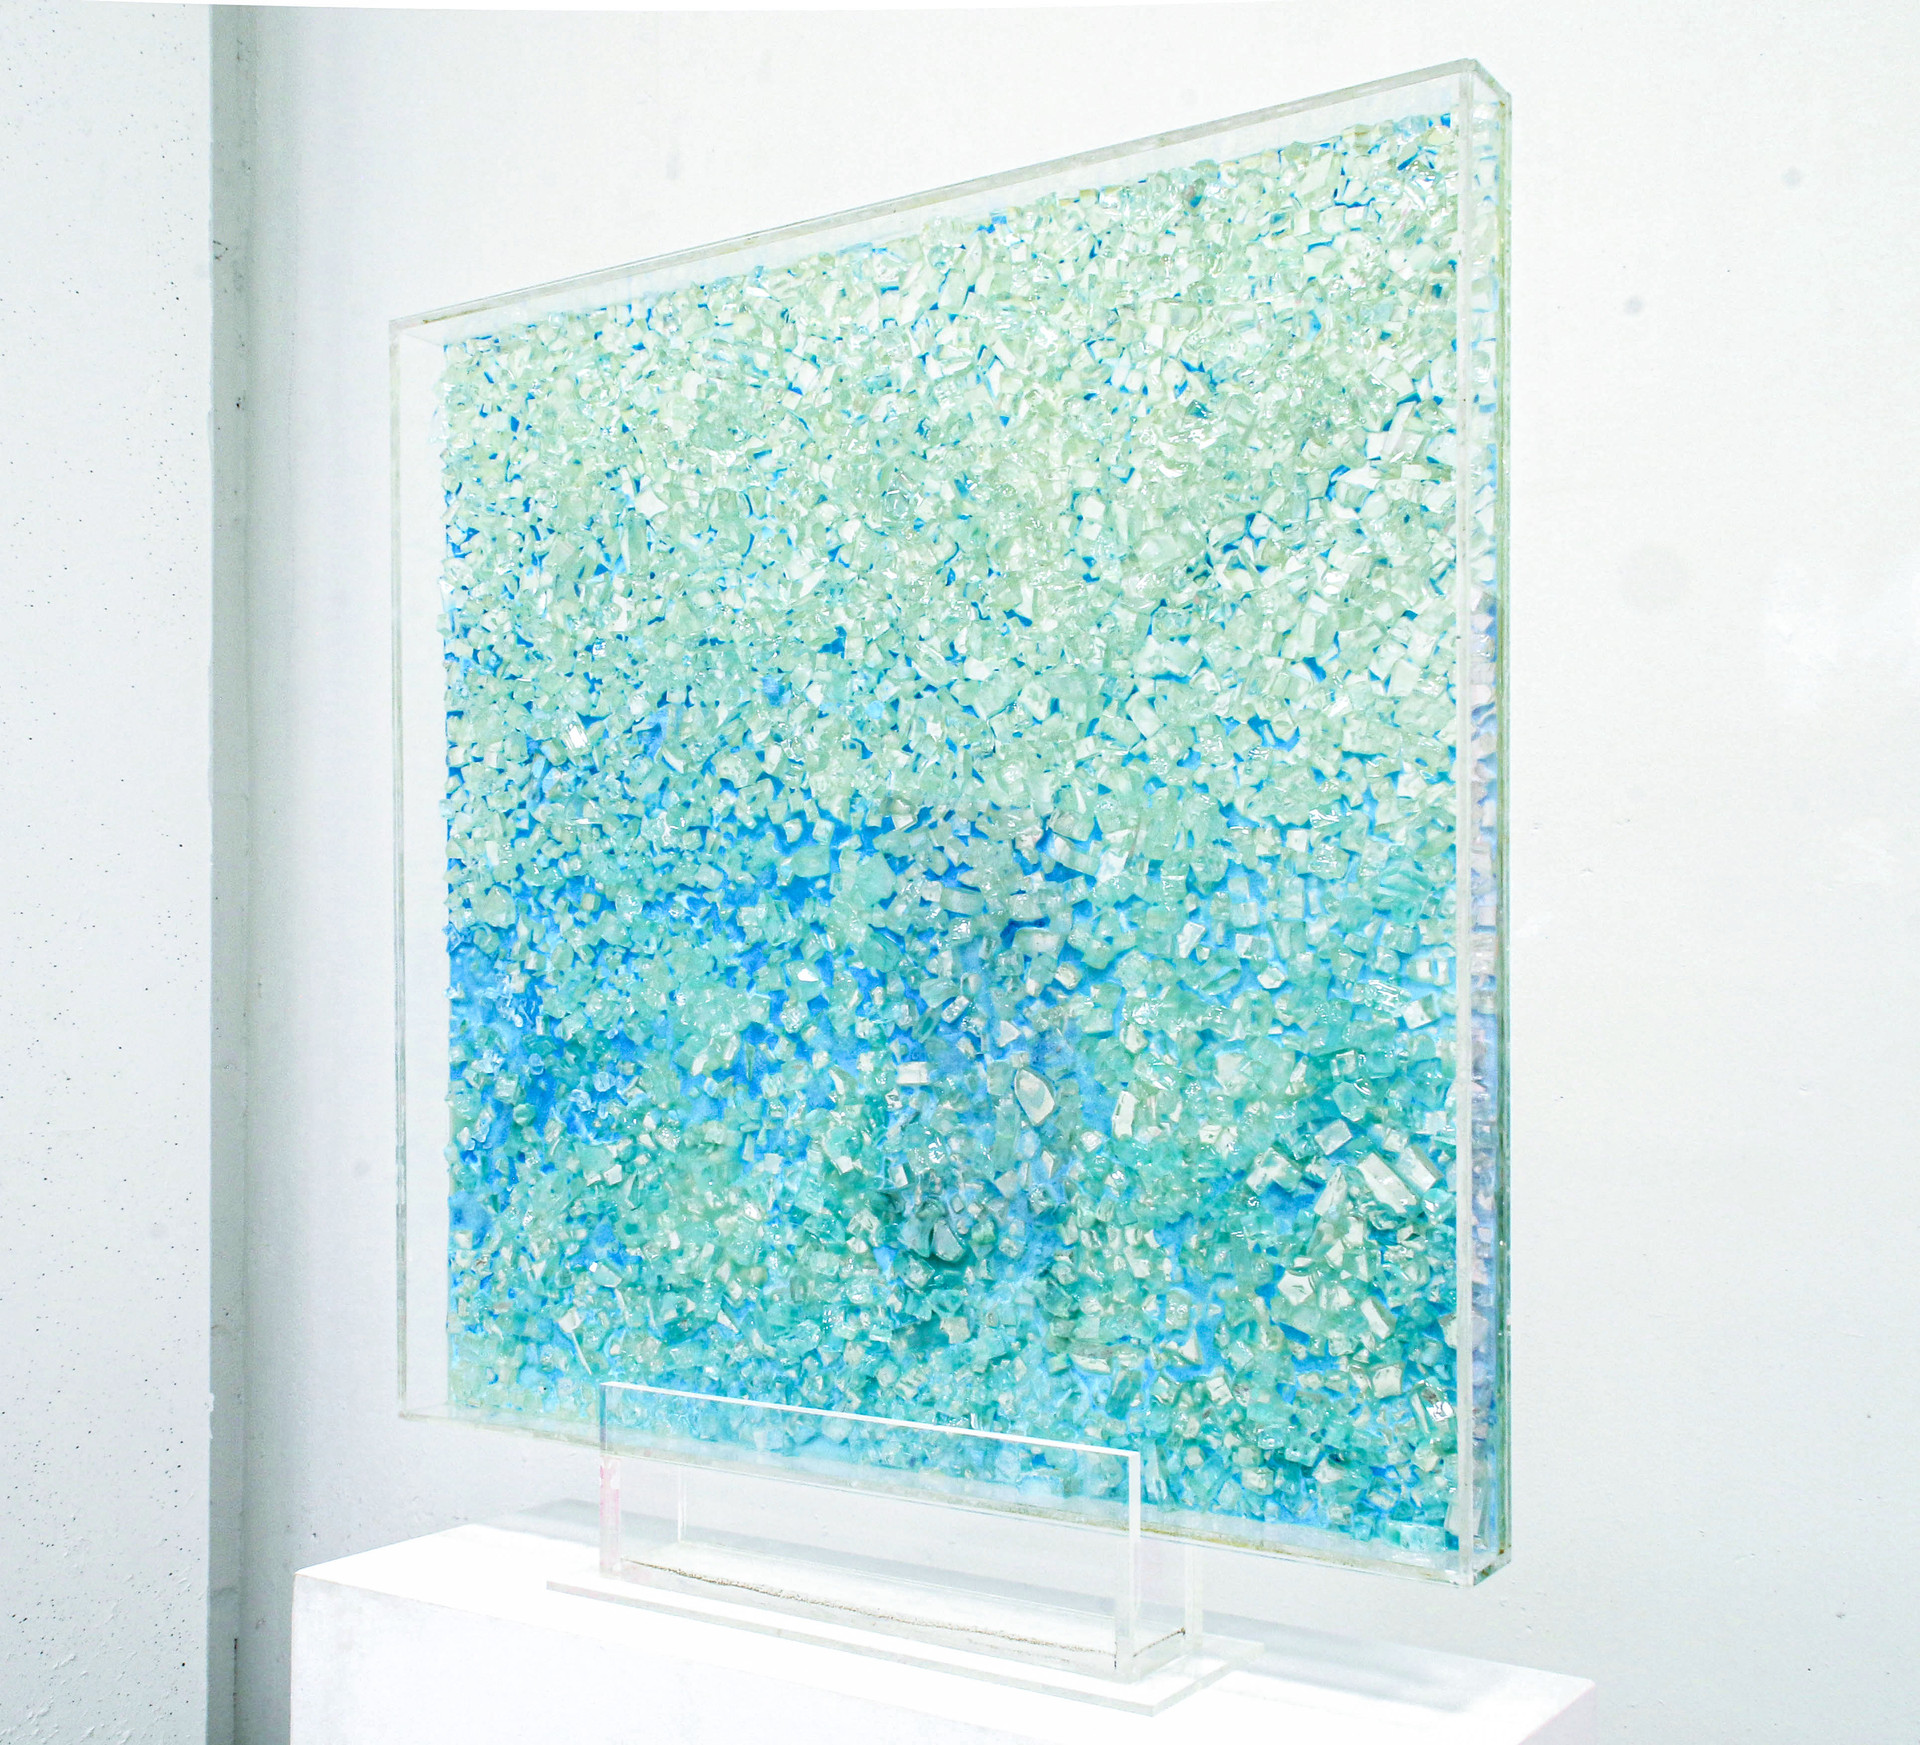 ICE CRUSH Acrylic paint, canvas, glass, resin 50x50x6cm AVAILABLE